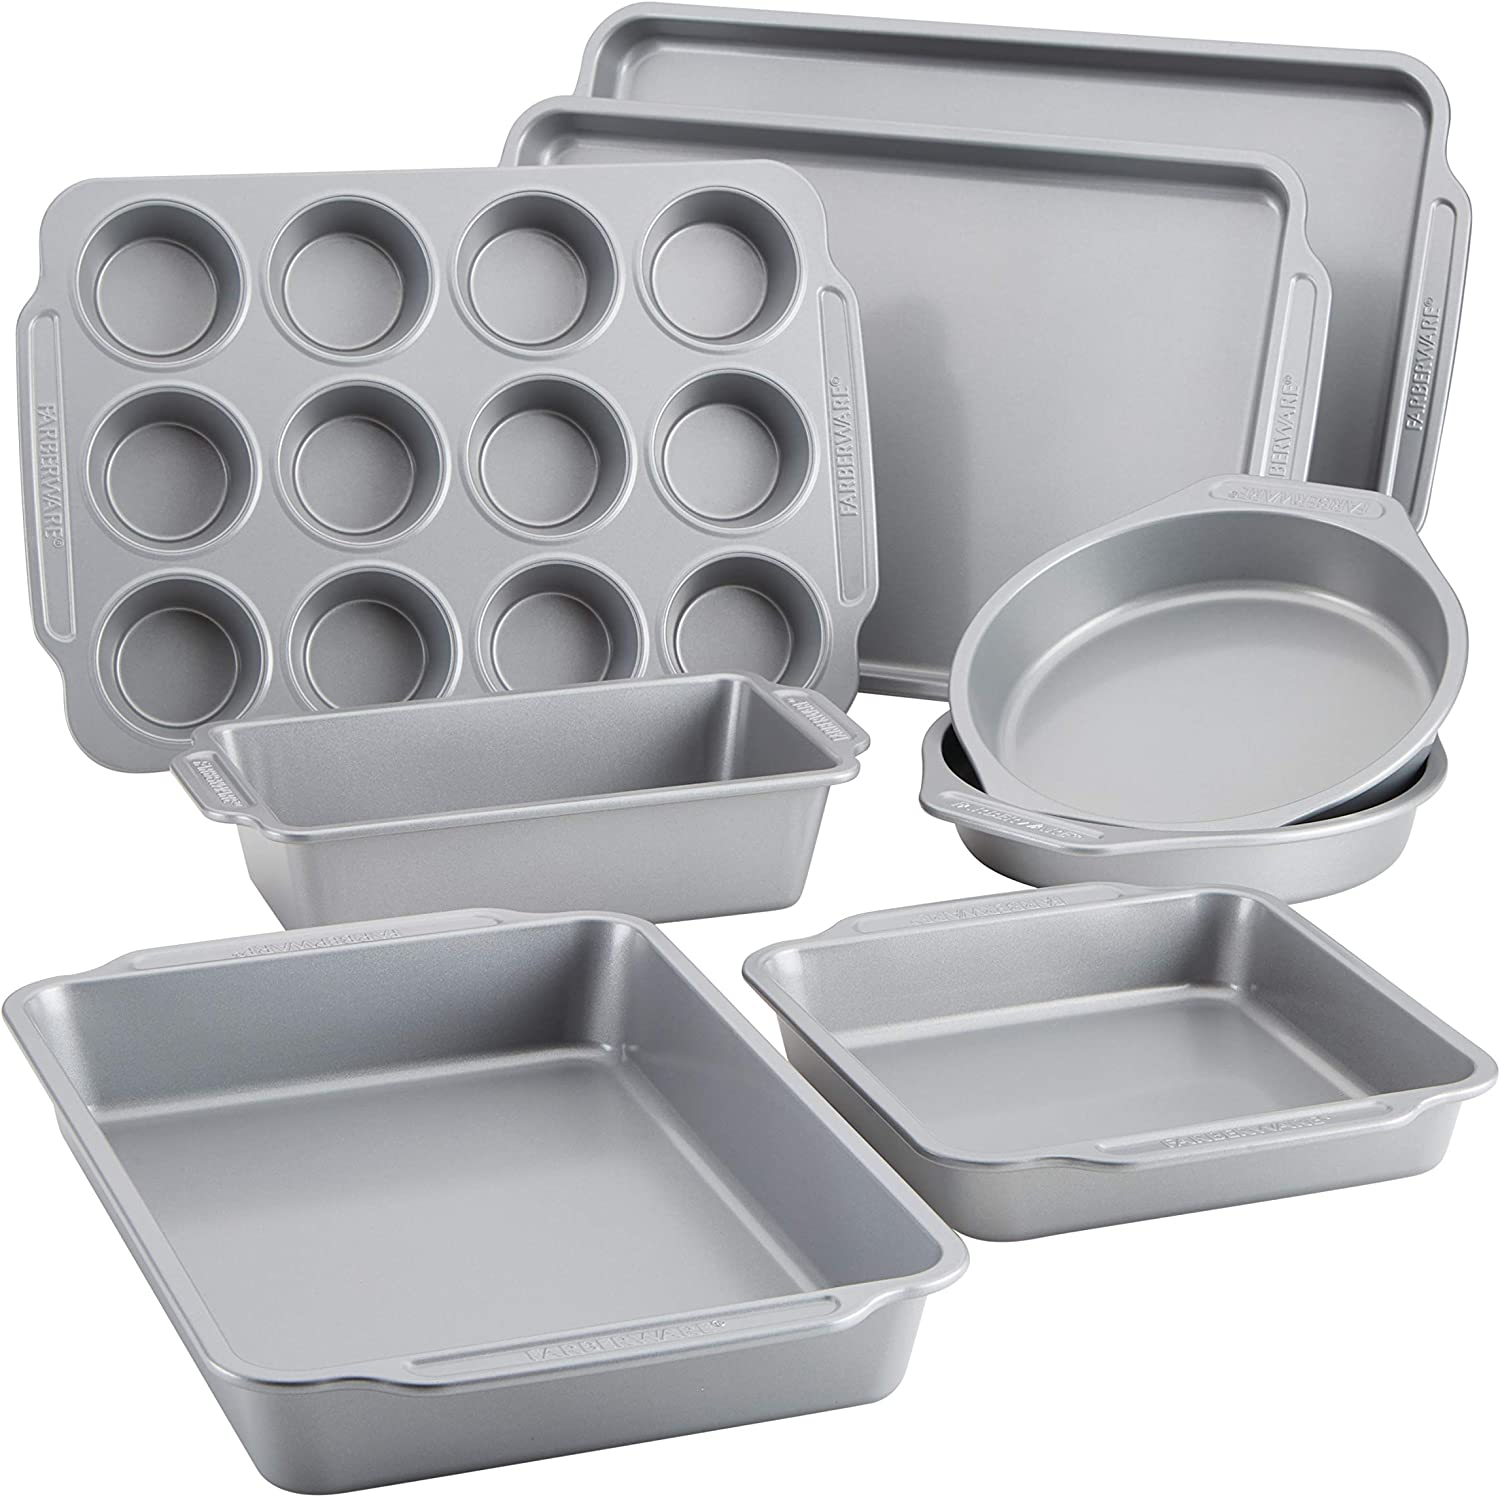 Farberware Includes Nonstick Cookie Sheets/Baking Cake Muffin and Bread Pan, 8 Piece, Gray